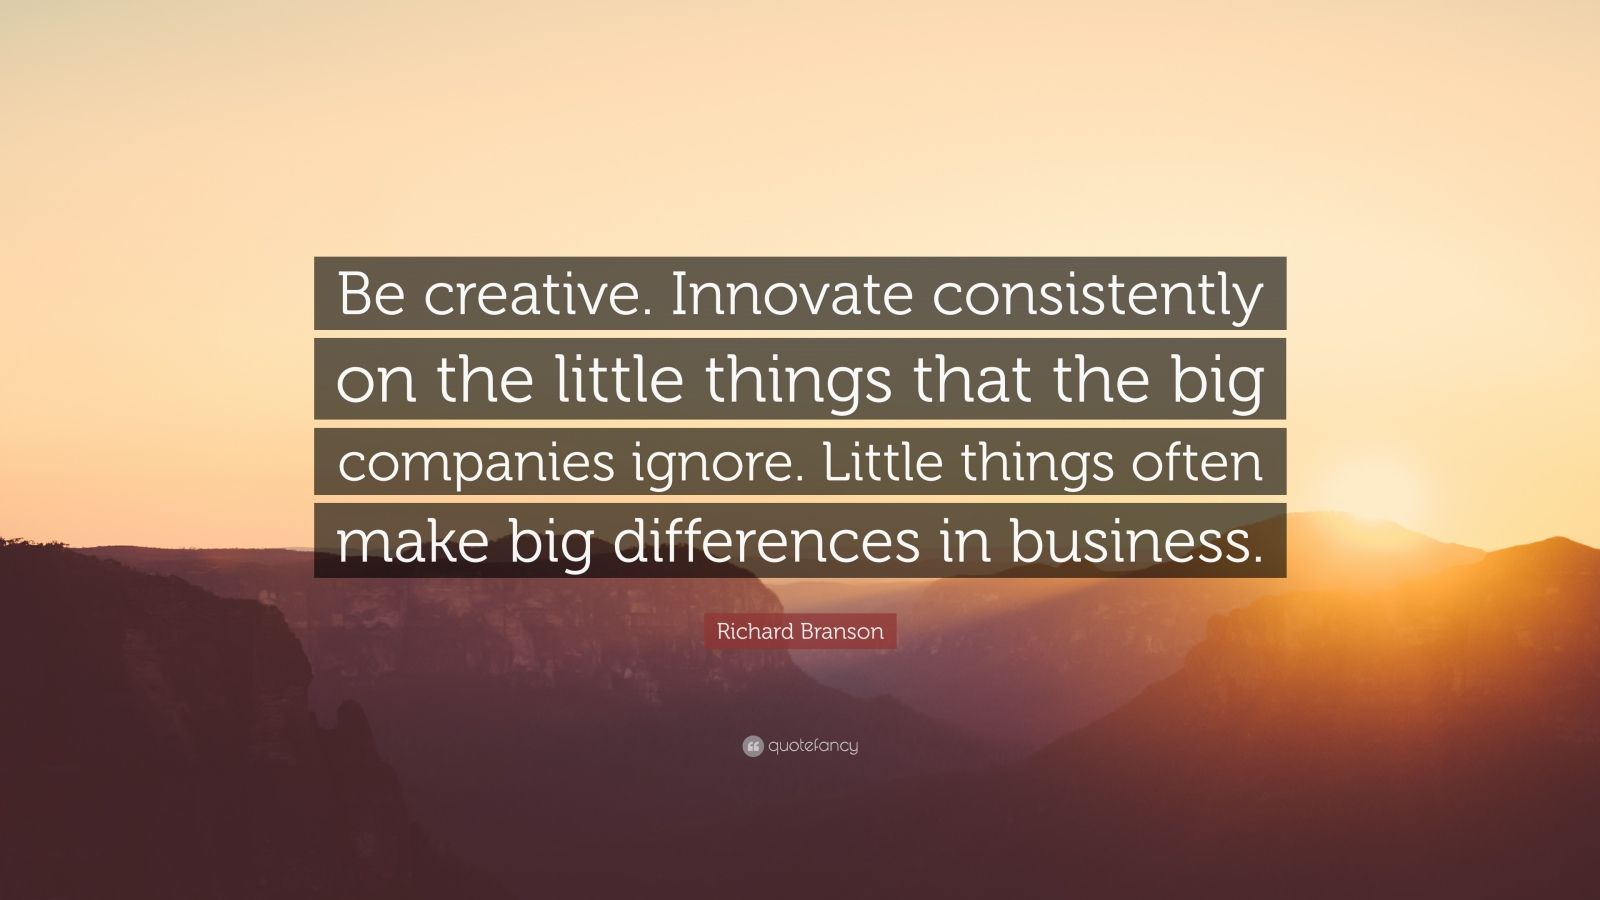 """Richard Branson Quote: """"Be creative. Innovate consistently on the little things that the big companies ignore. Little things often make big differences in business."""""""